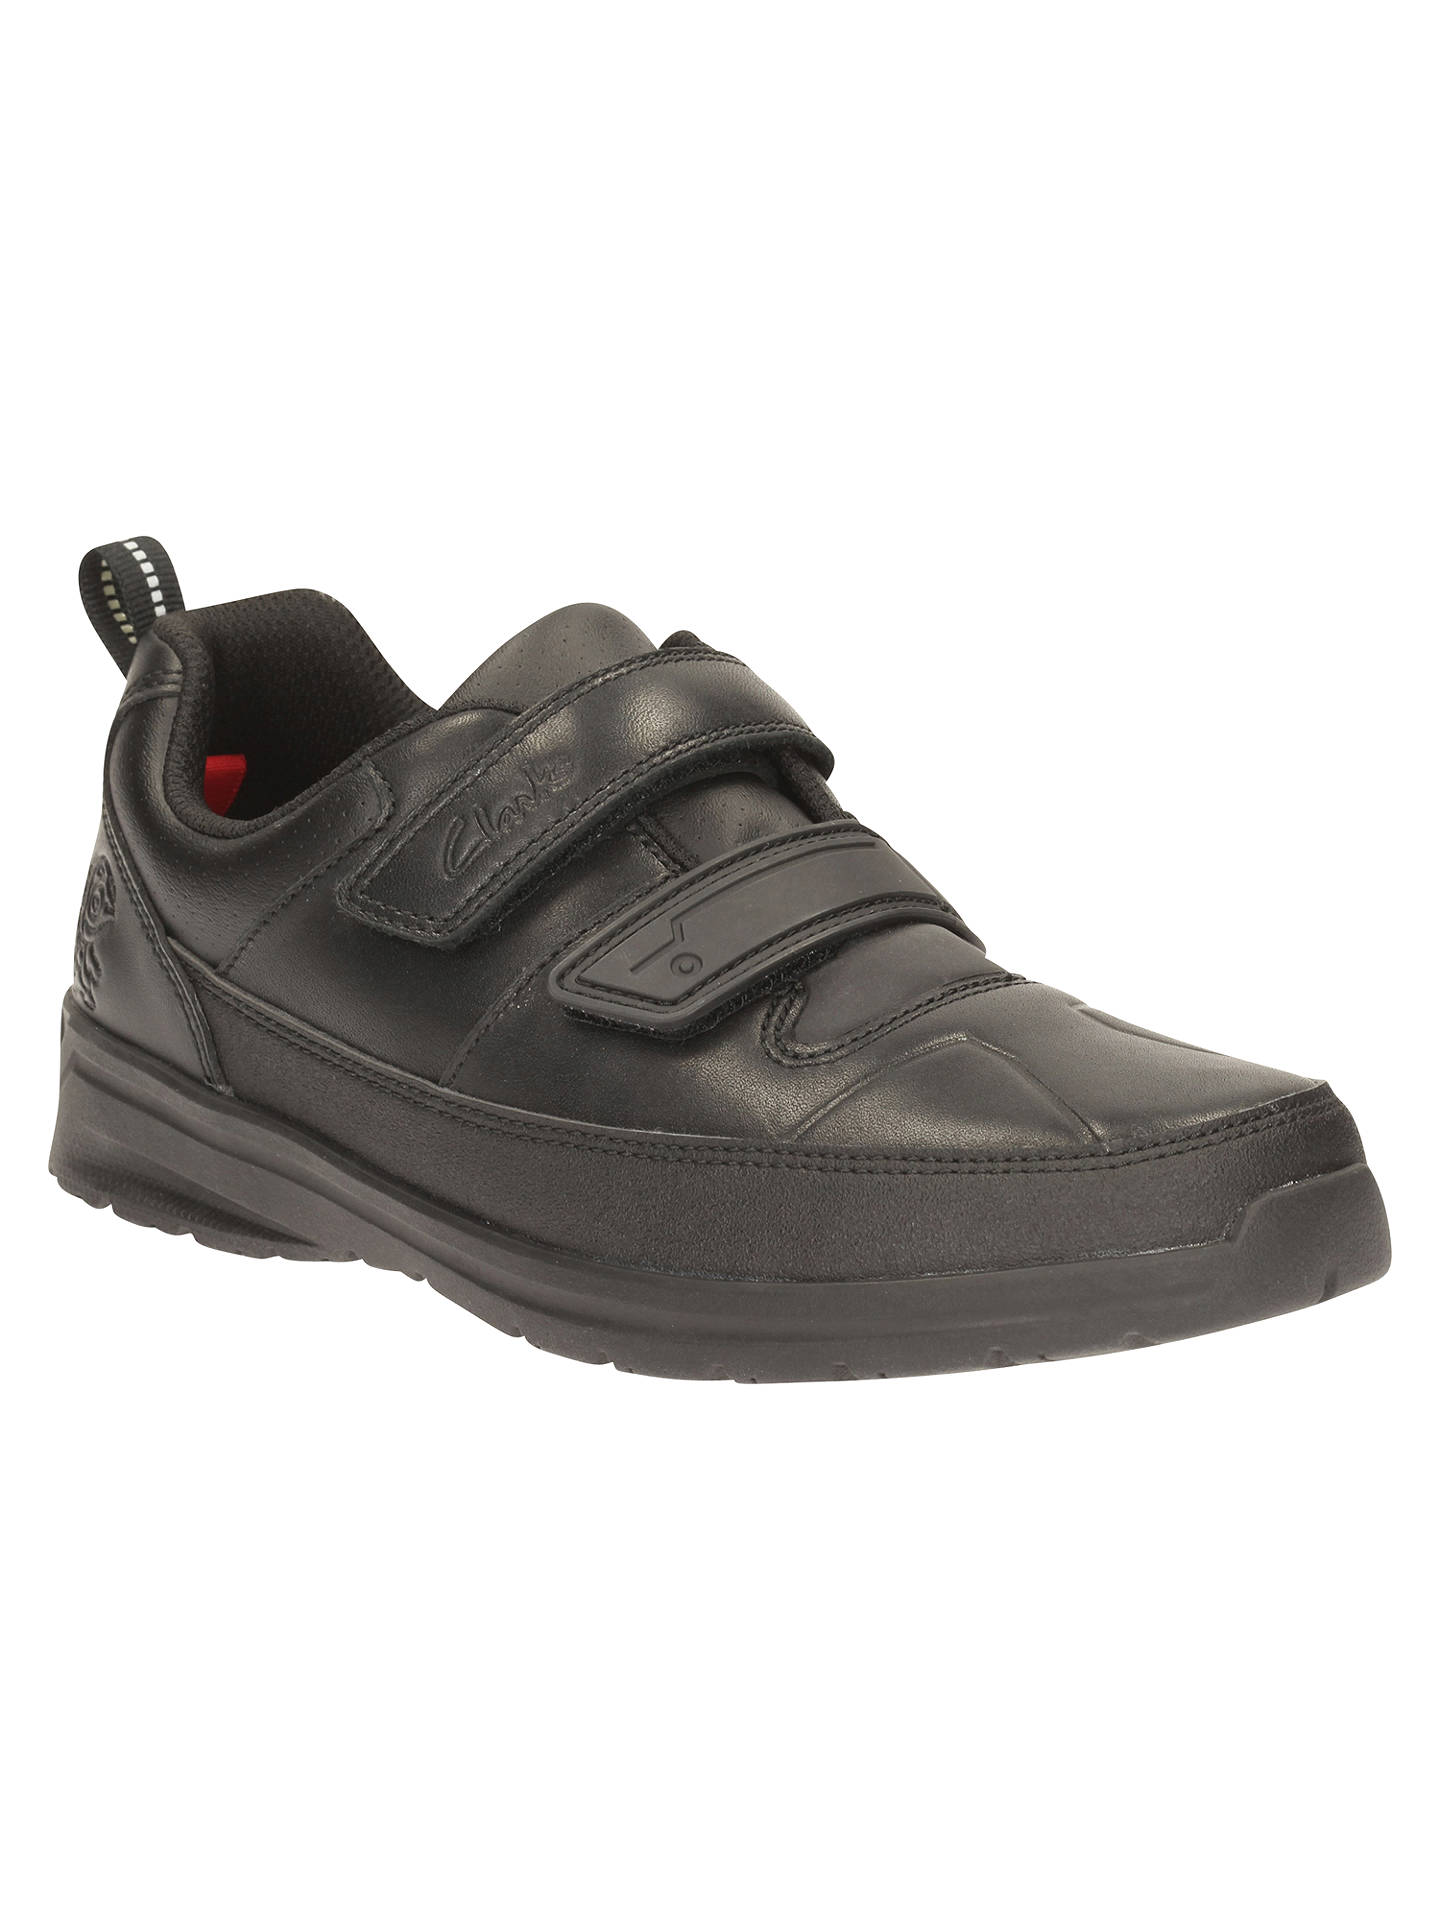 Clarks Children's Gloform Reflect Ace Leather School Shoes ...